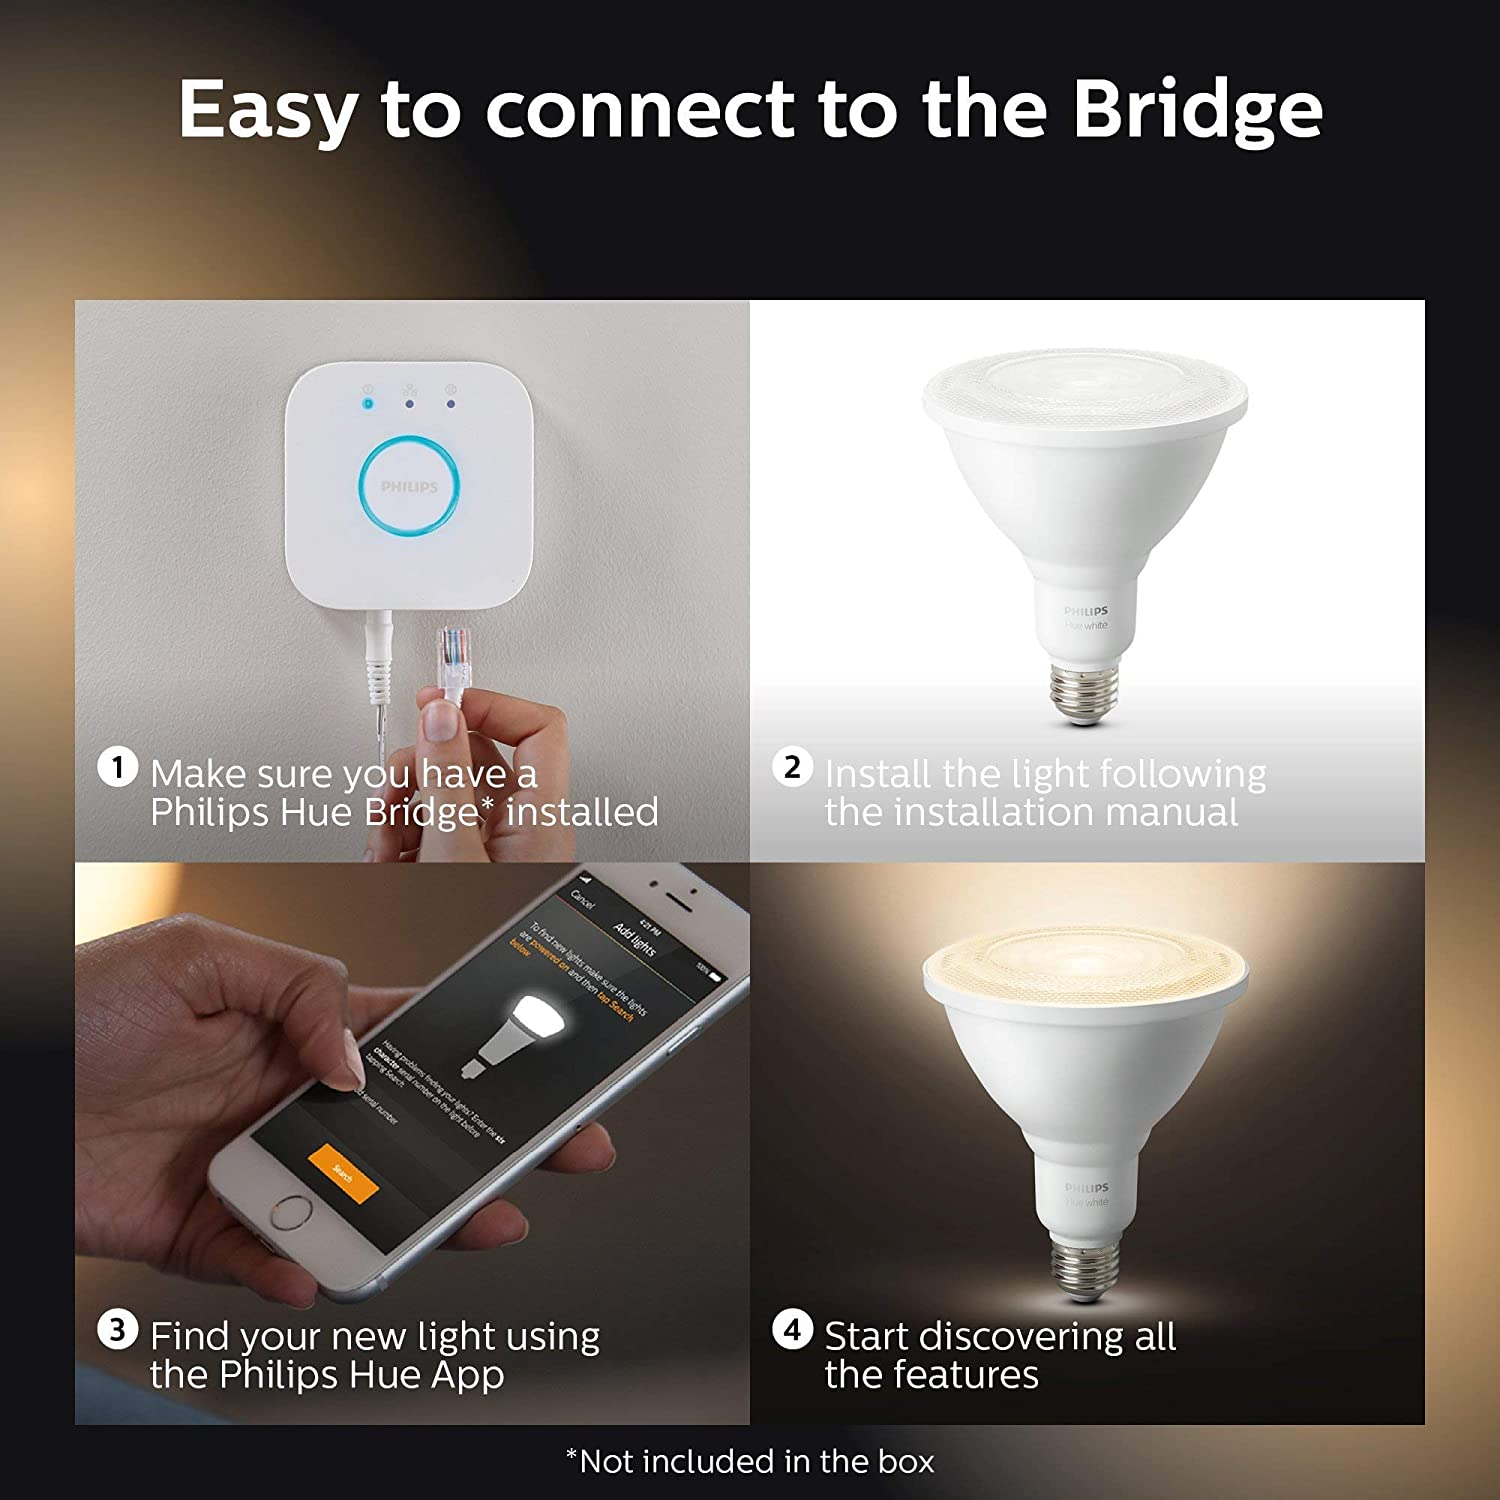 Renewed Philips Hue Hub required Works with Alexa 2 White PAR38 LED Smart Bulbs Apple HomeKit and Google Assistant Philips Hue White Outdoor PAR38 13W Smart Bulbs